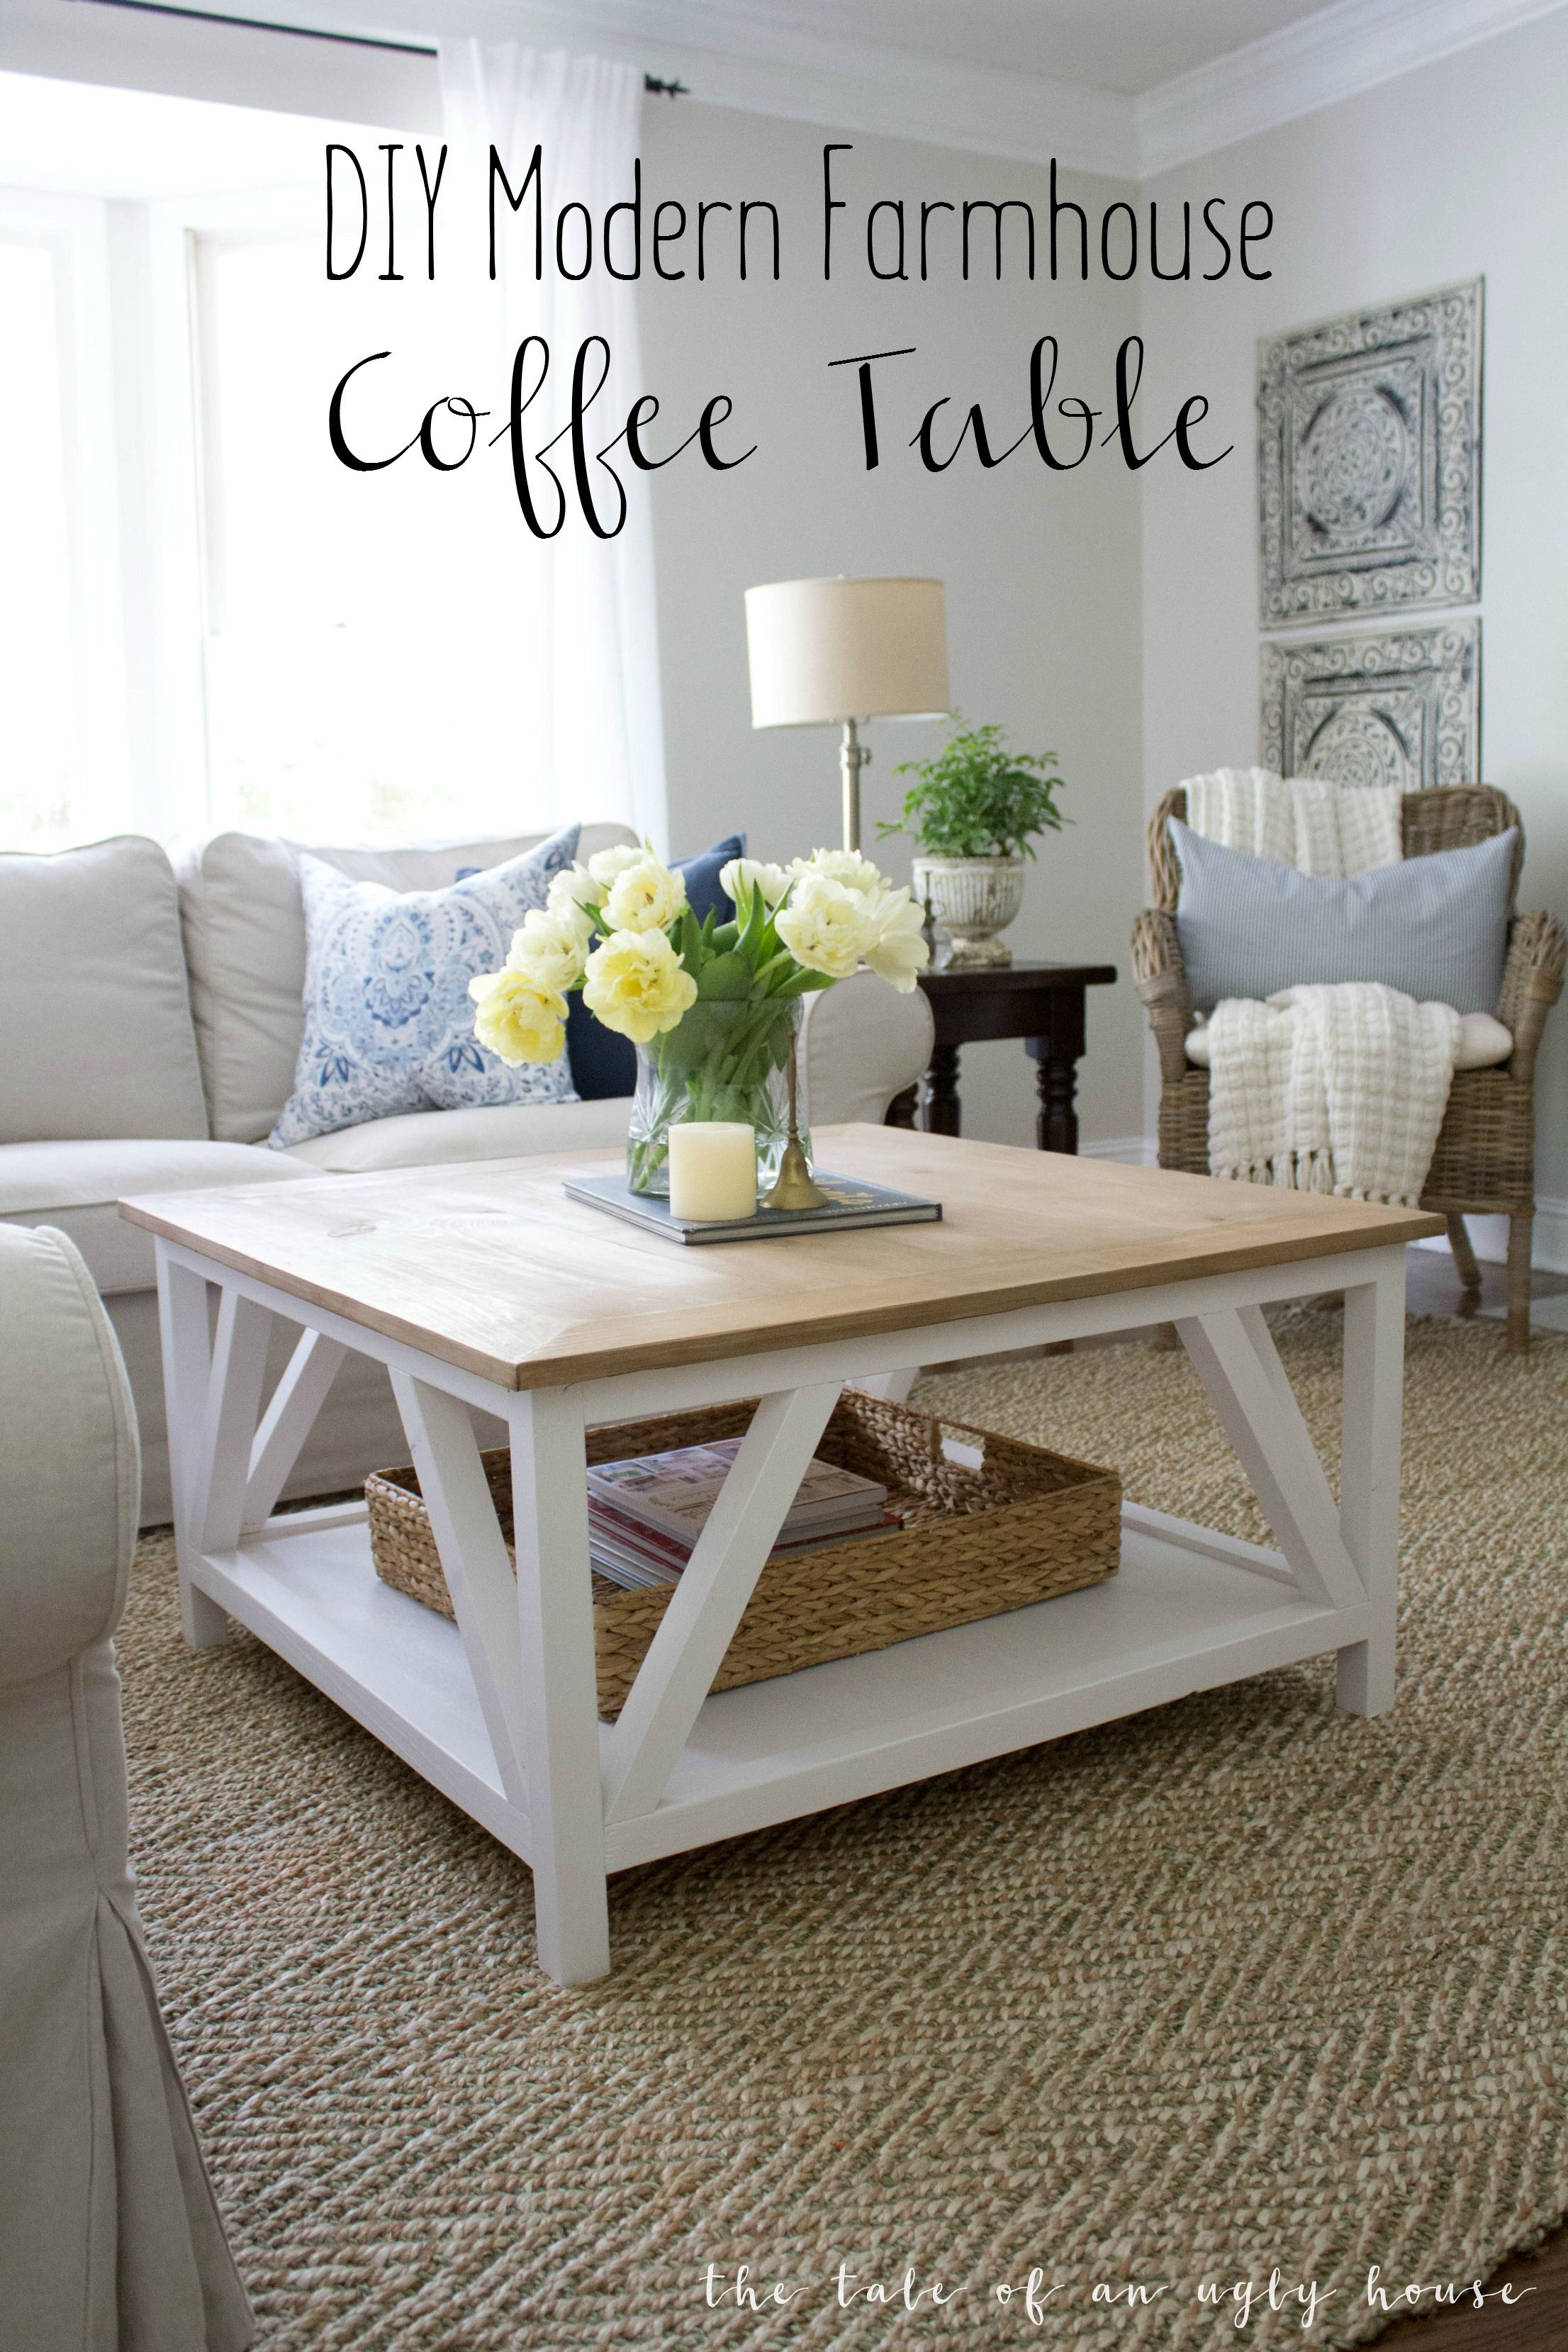 20 easy free plans to build a diy coffee table diy coffee how to build a diy modern farmhouse coffee table classic square coffee table with painted base and rustic stained table top complete with bottom shelf for geotapseo Gallery